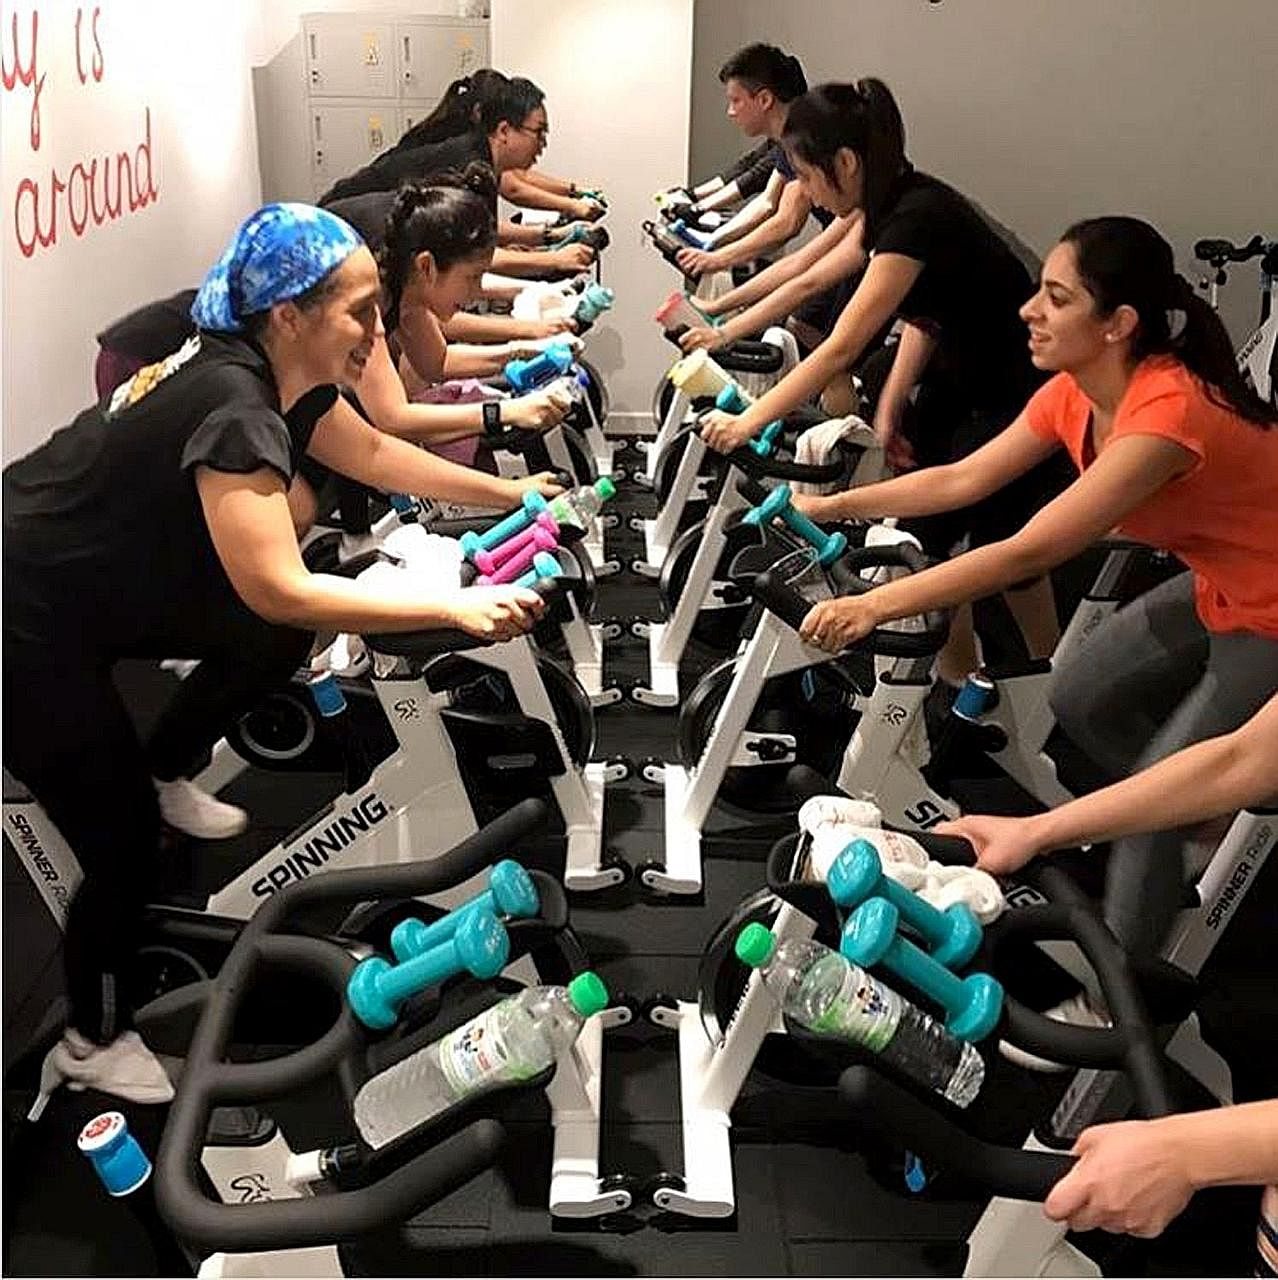 Cycling studios like Aloha Cycle Club in Kuala Lumpur are cashing in on the demand for spinning, an exercise that combines cycling with music, from young, urban Malaysians.